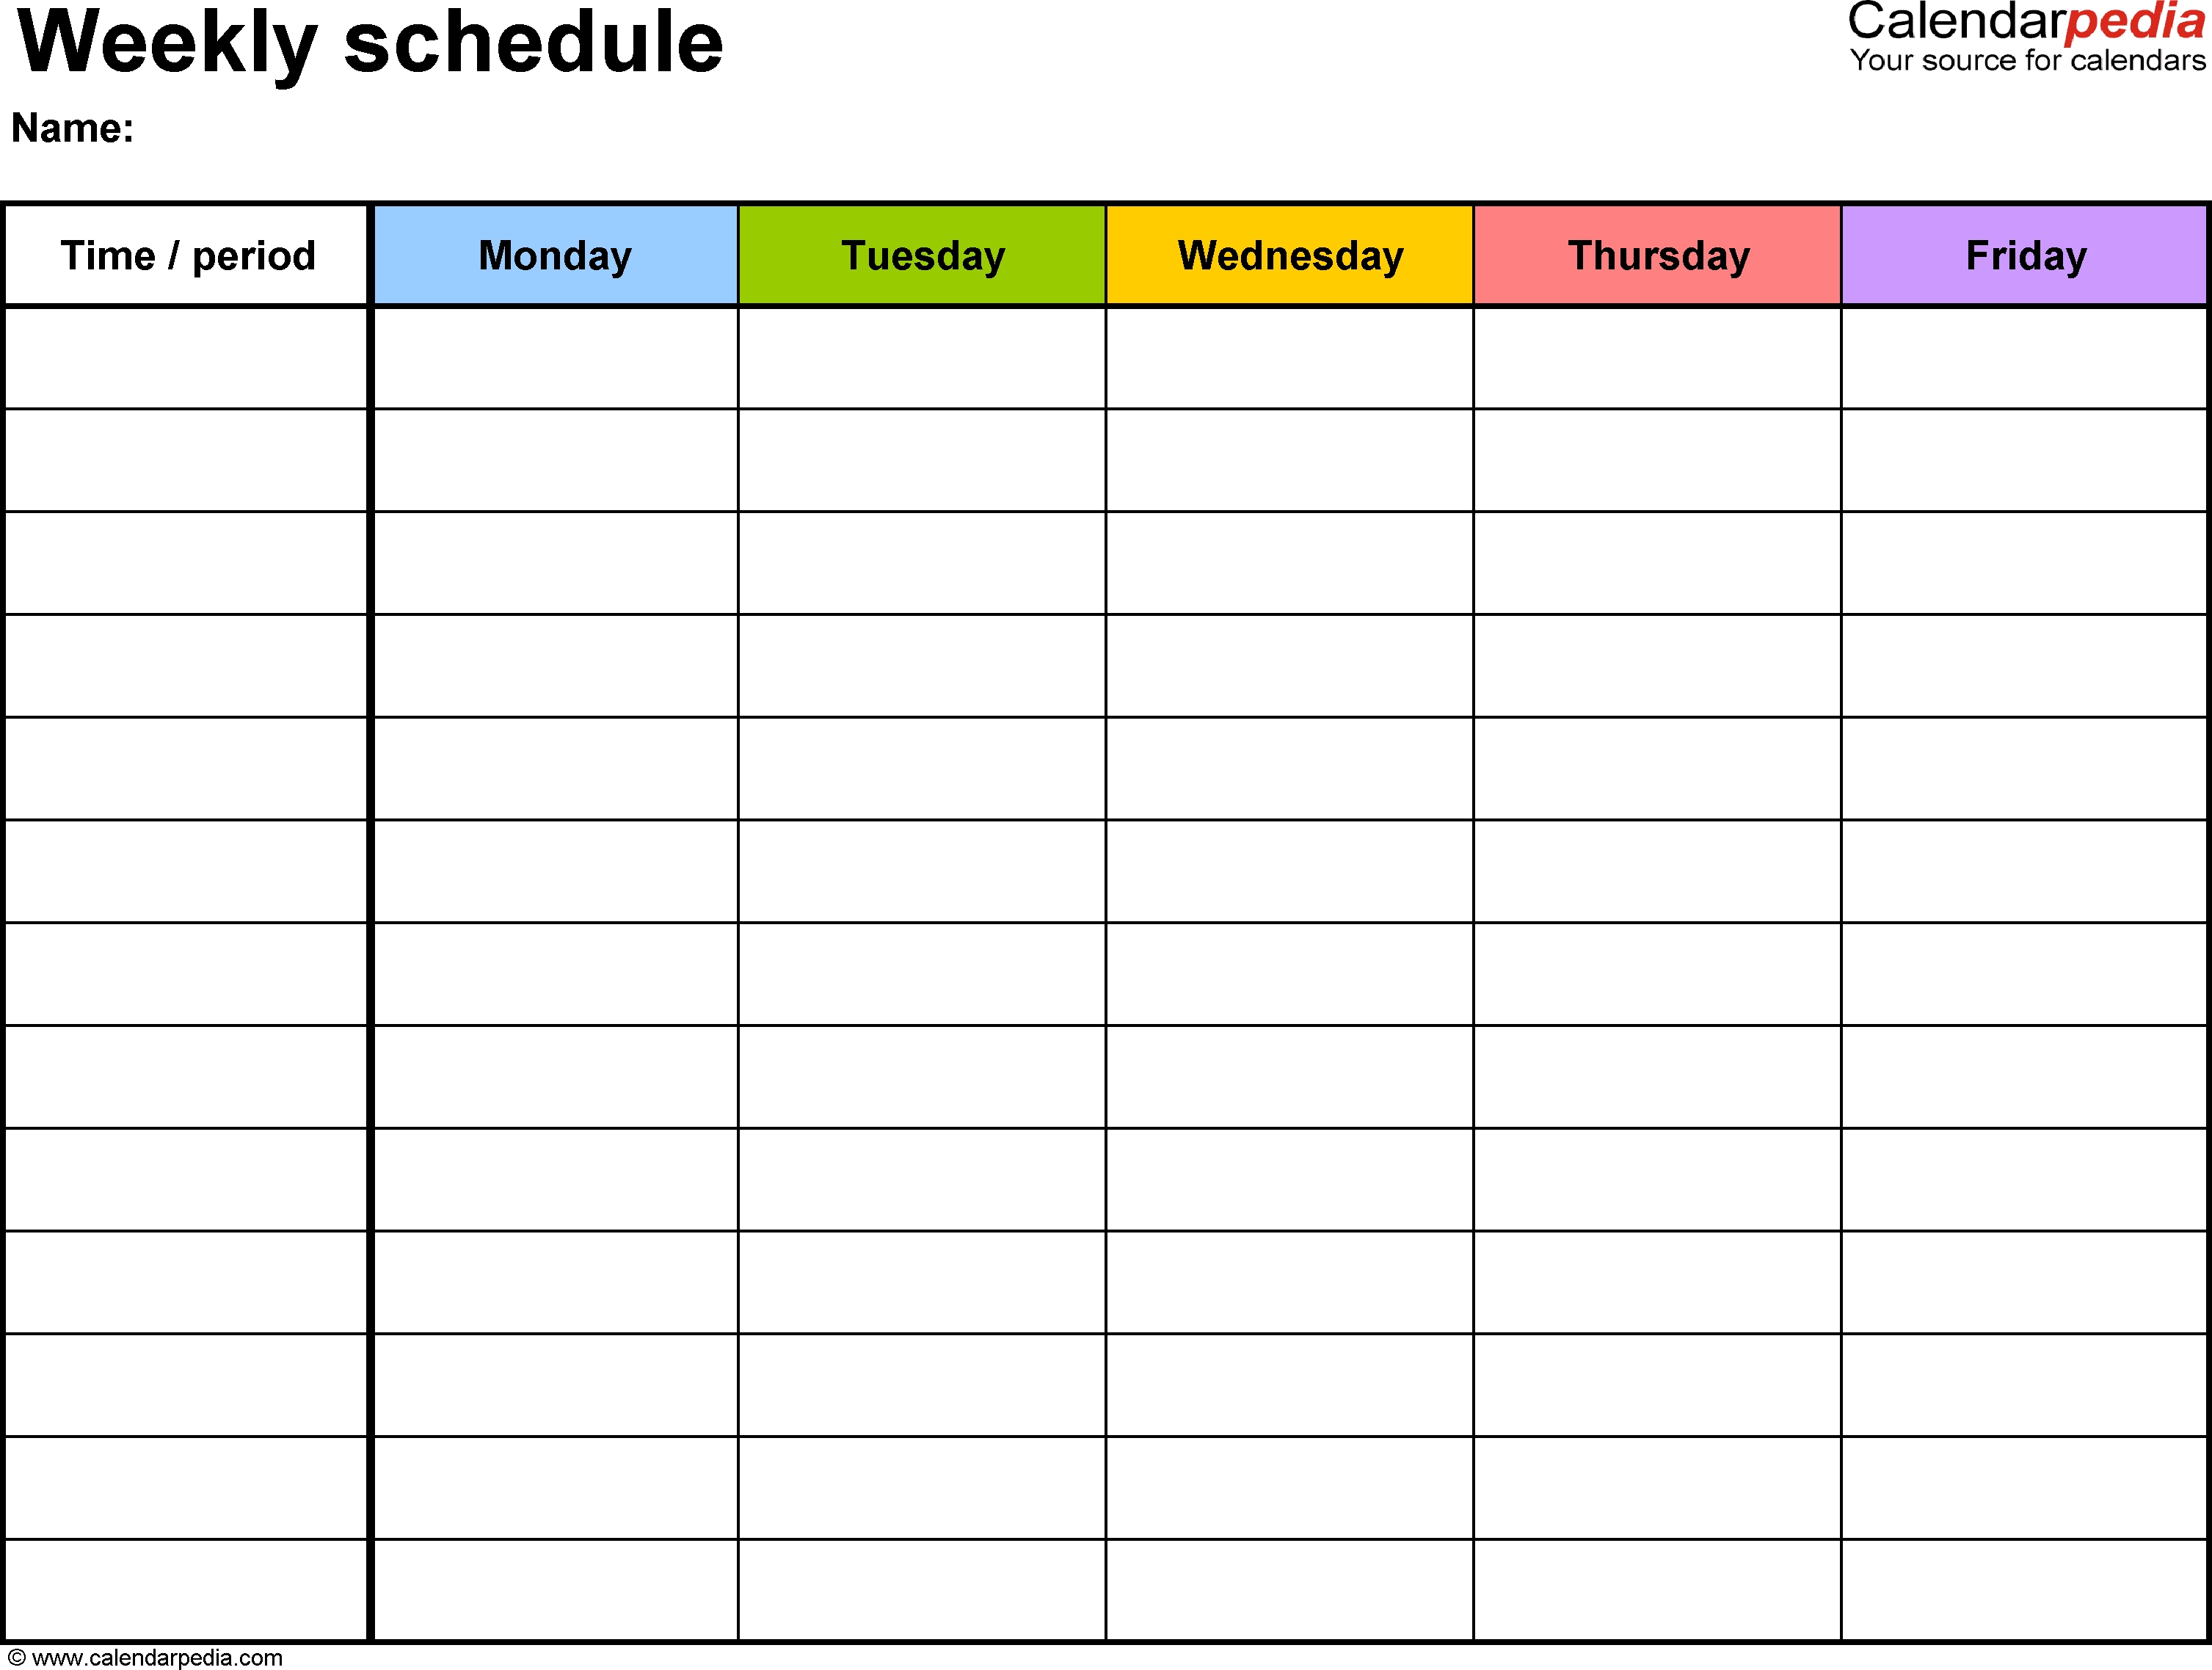 Free Weekly Schedule Templates For Excel - 18 Templates  Printable Time Of Day Calendar